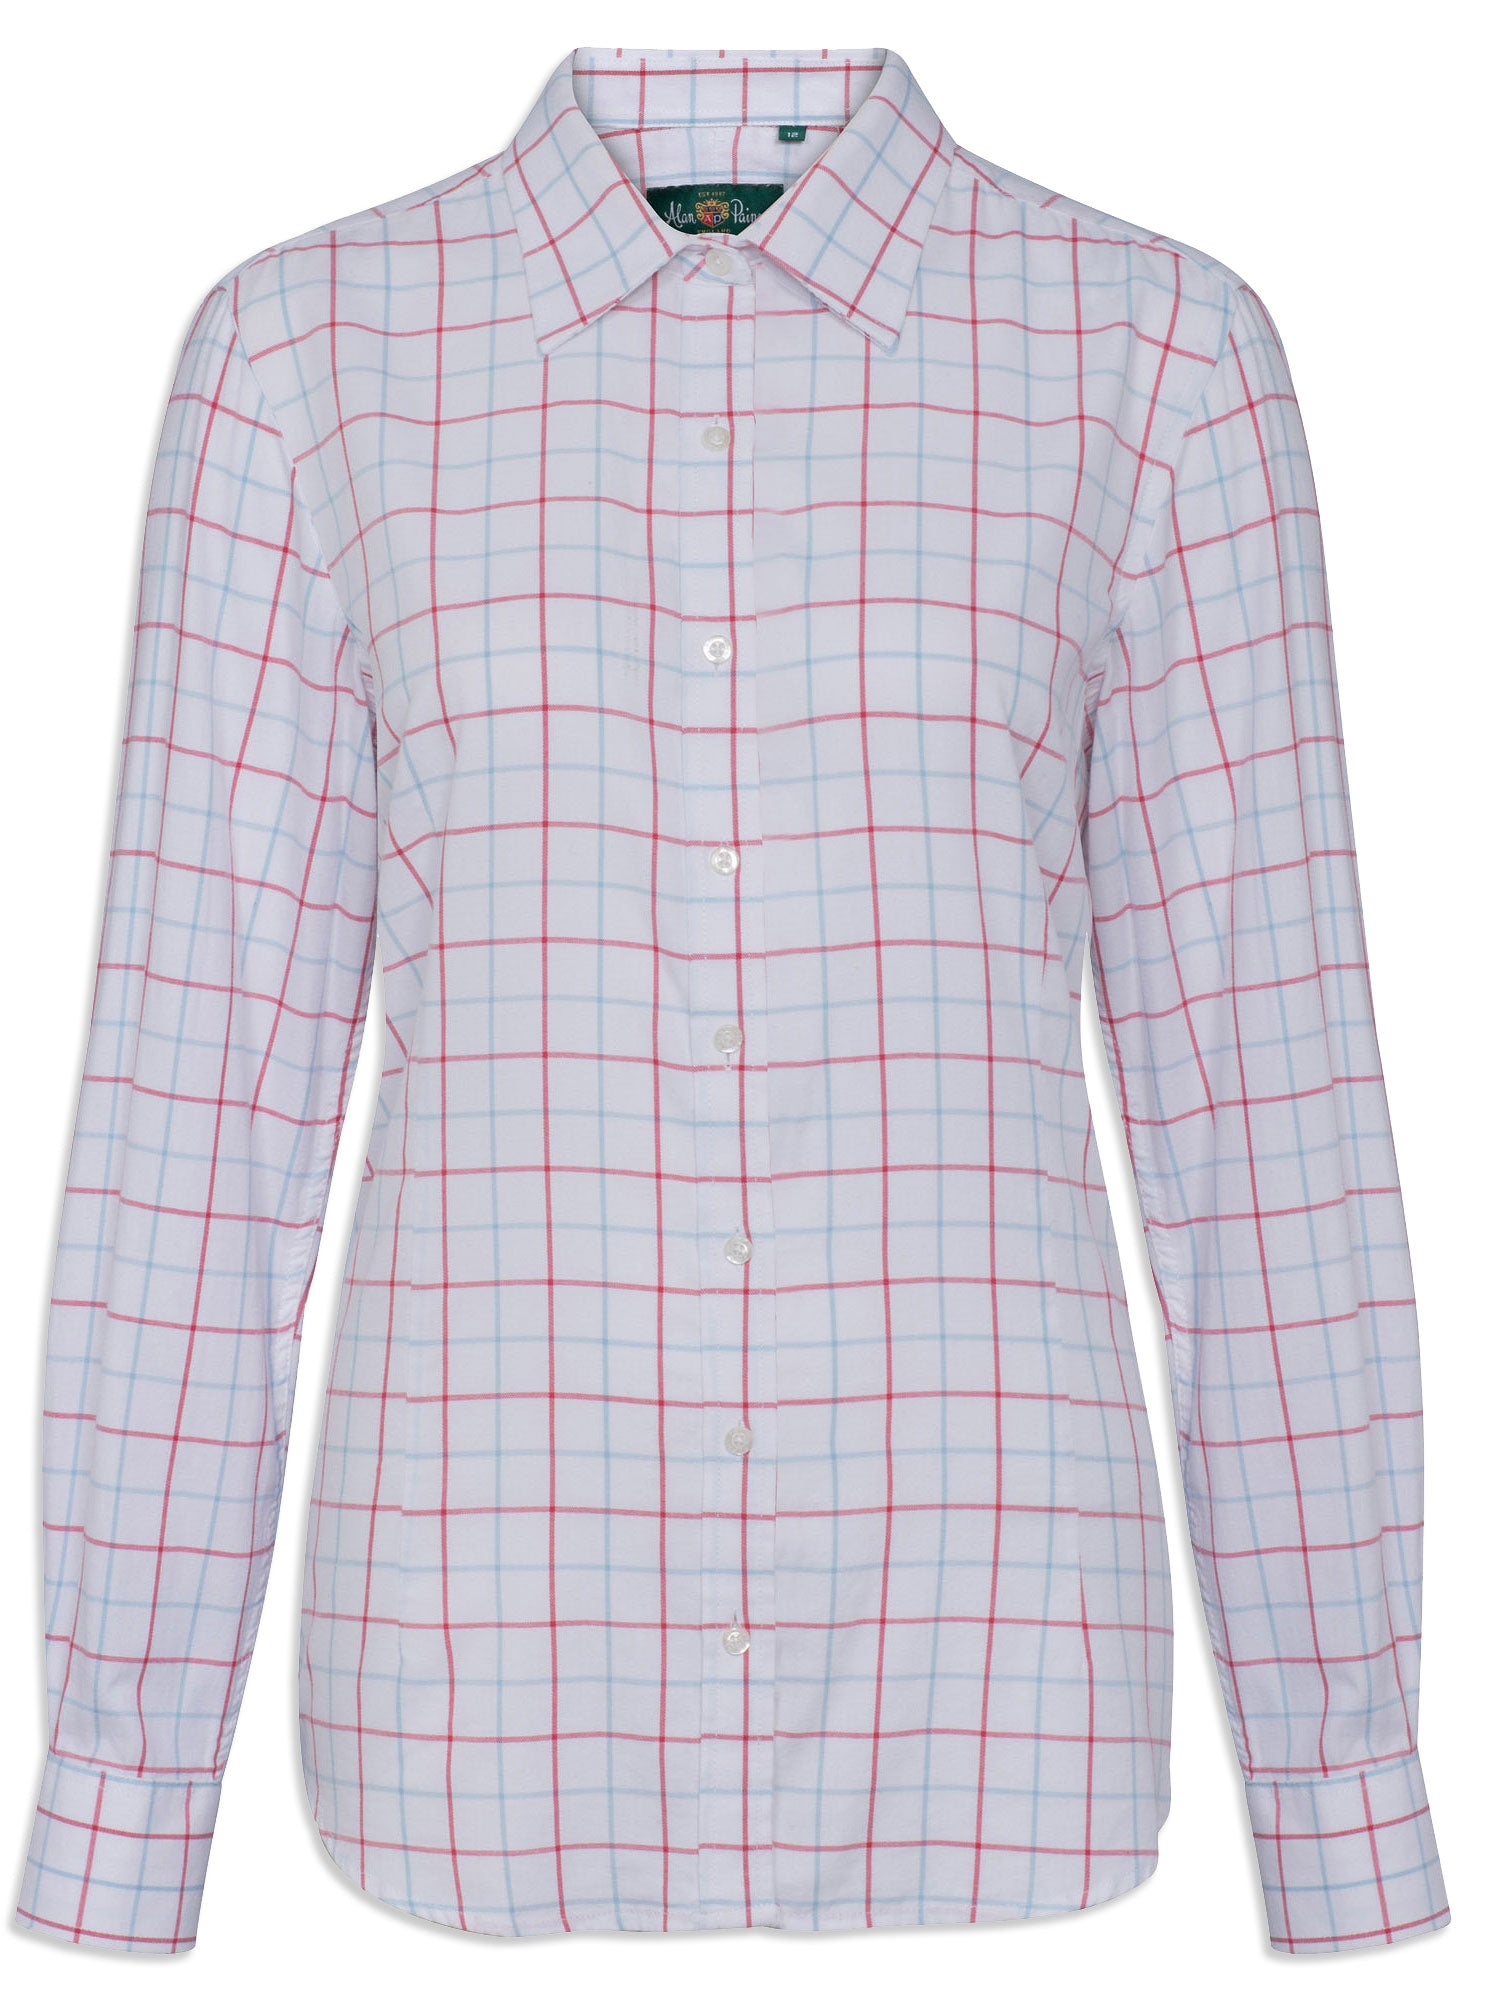 A ladies' Tattersall checked shirt in Red and Blue for a delightfully fresh country look